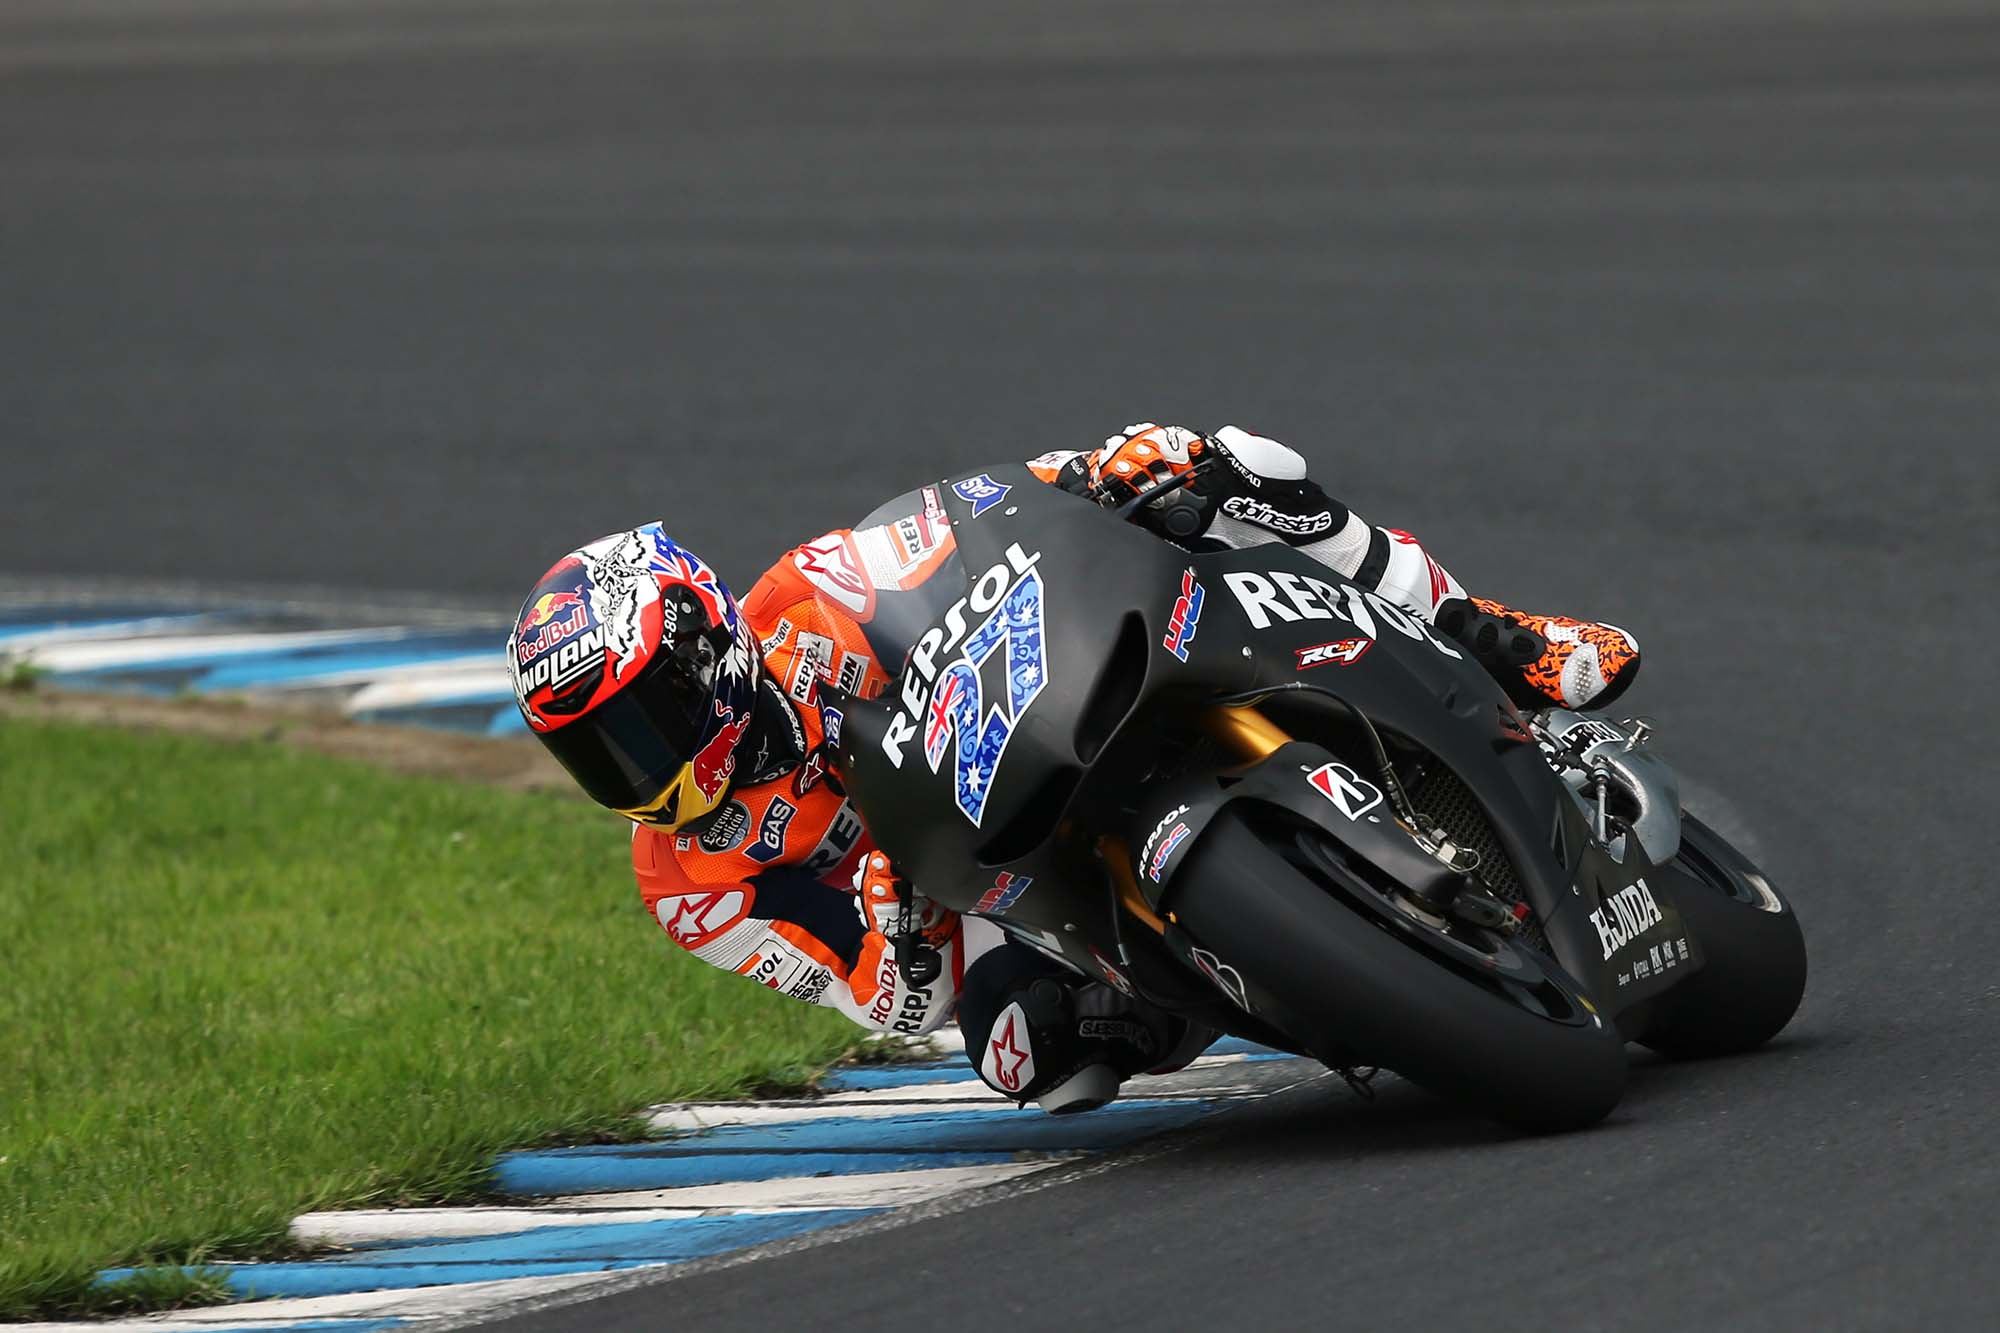 Video: Casey Stoner Rides the Honda RC213V at Motegi - Asphalt & Rubber